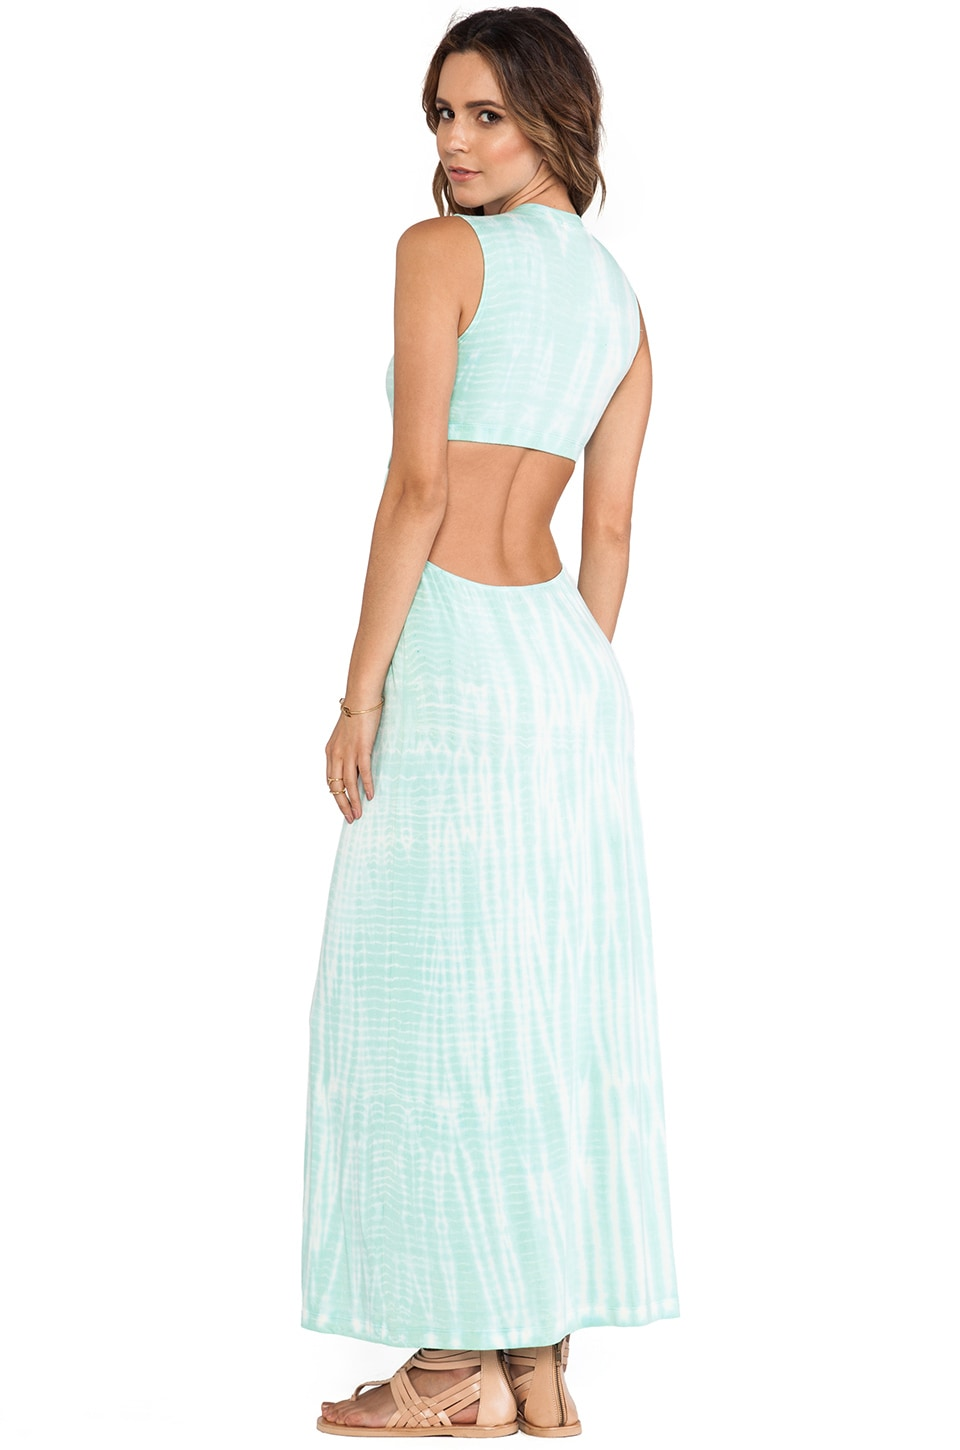 Stone Fox Swim Sydney Dress in Salt